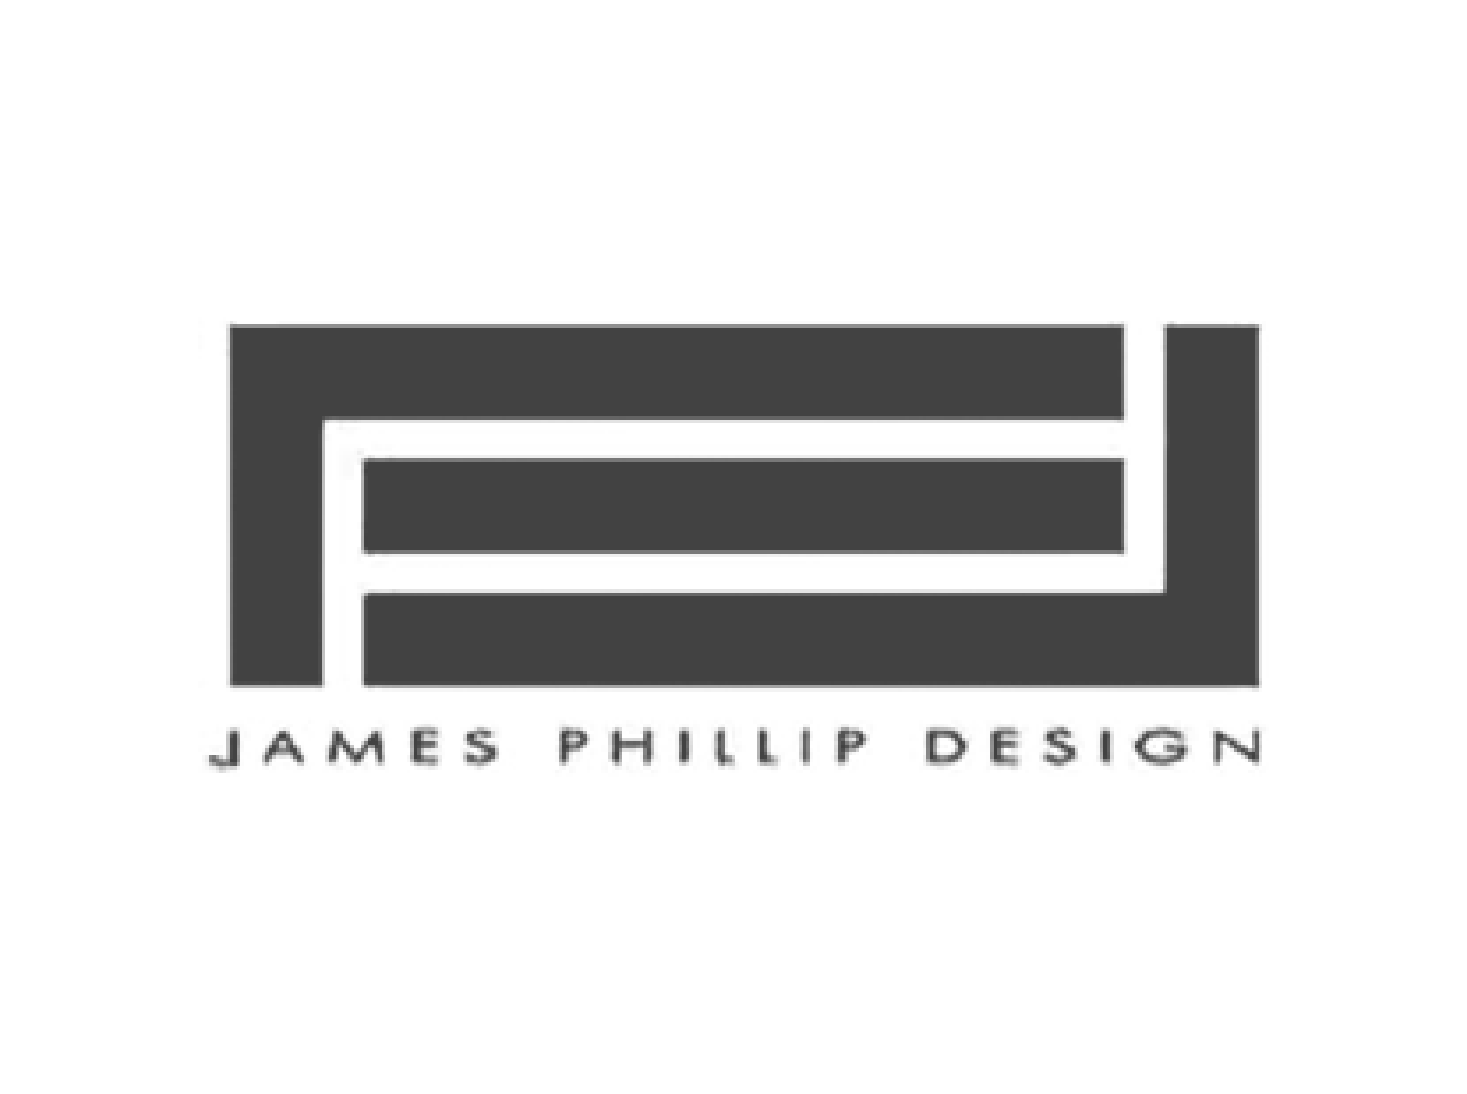 Clients&Brands__James Phillip Design.png